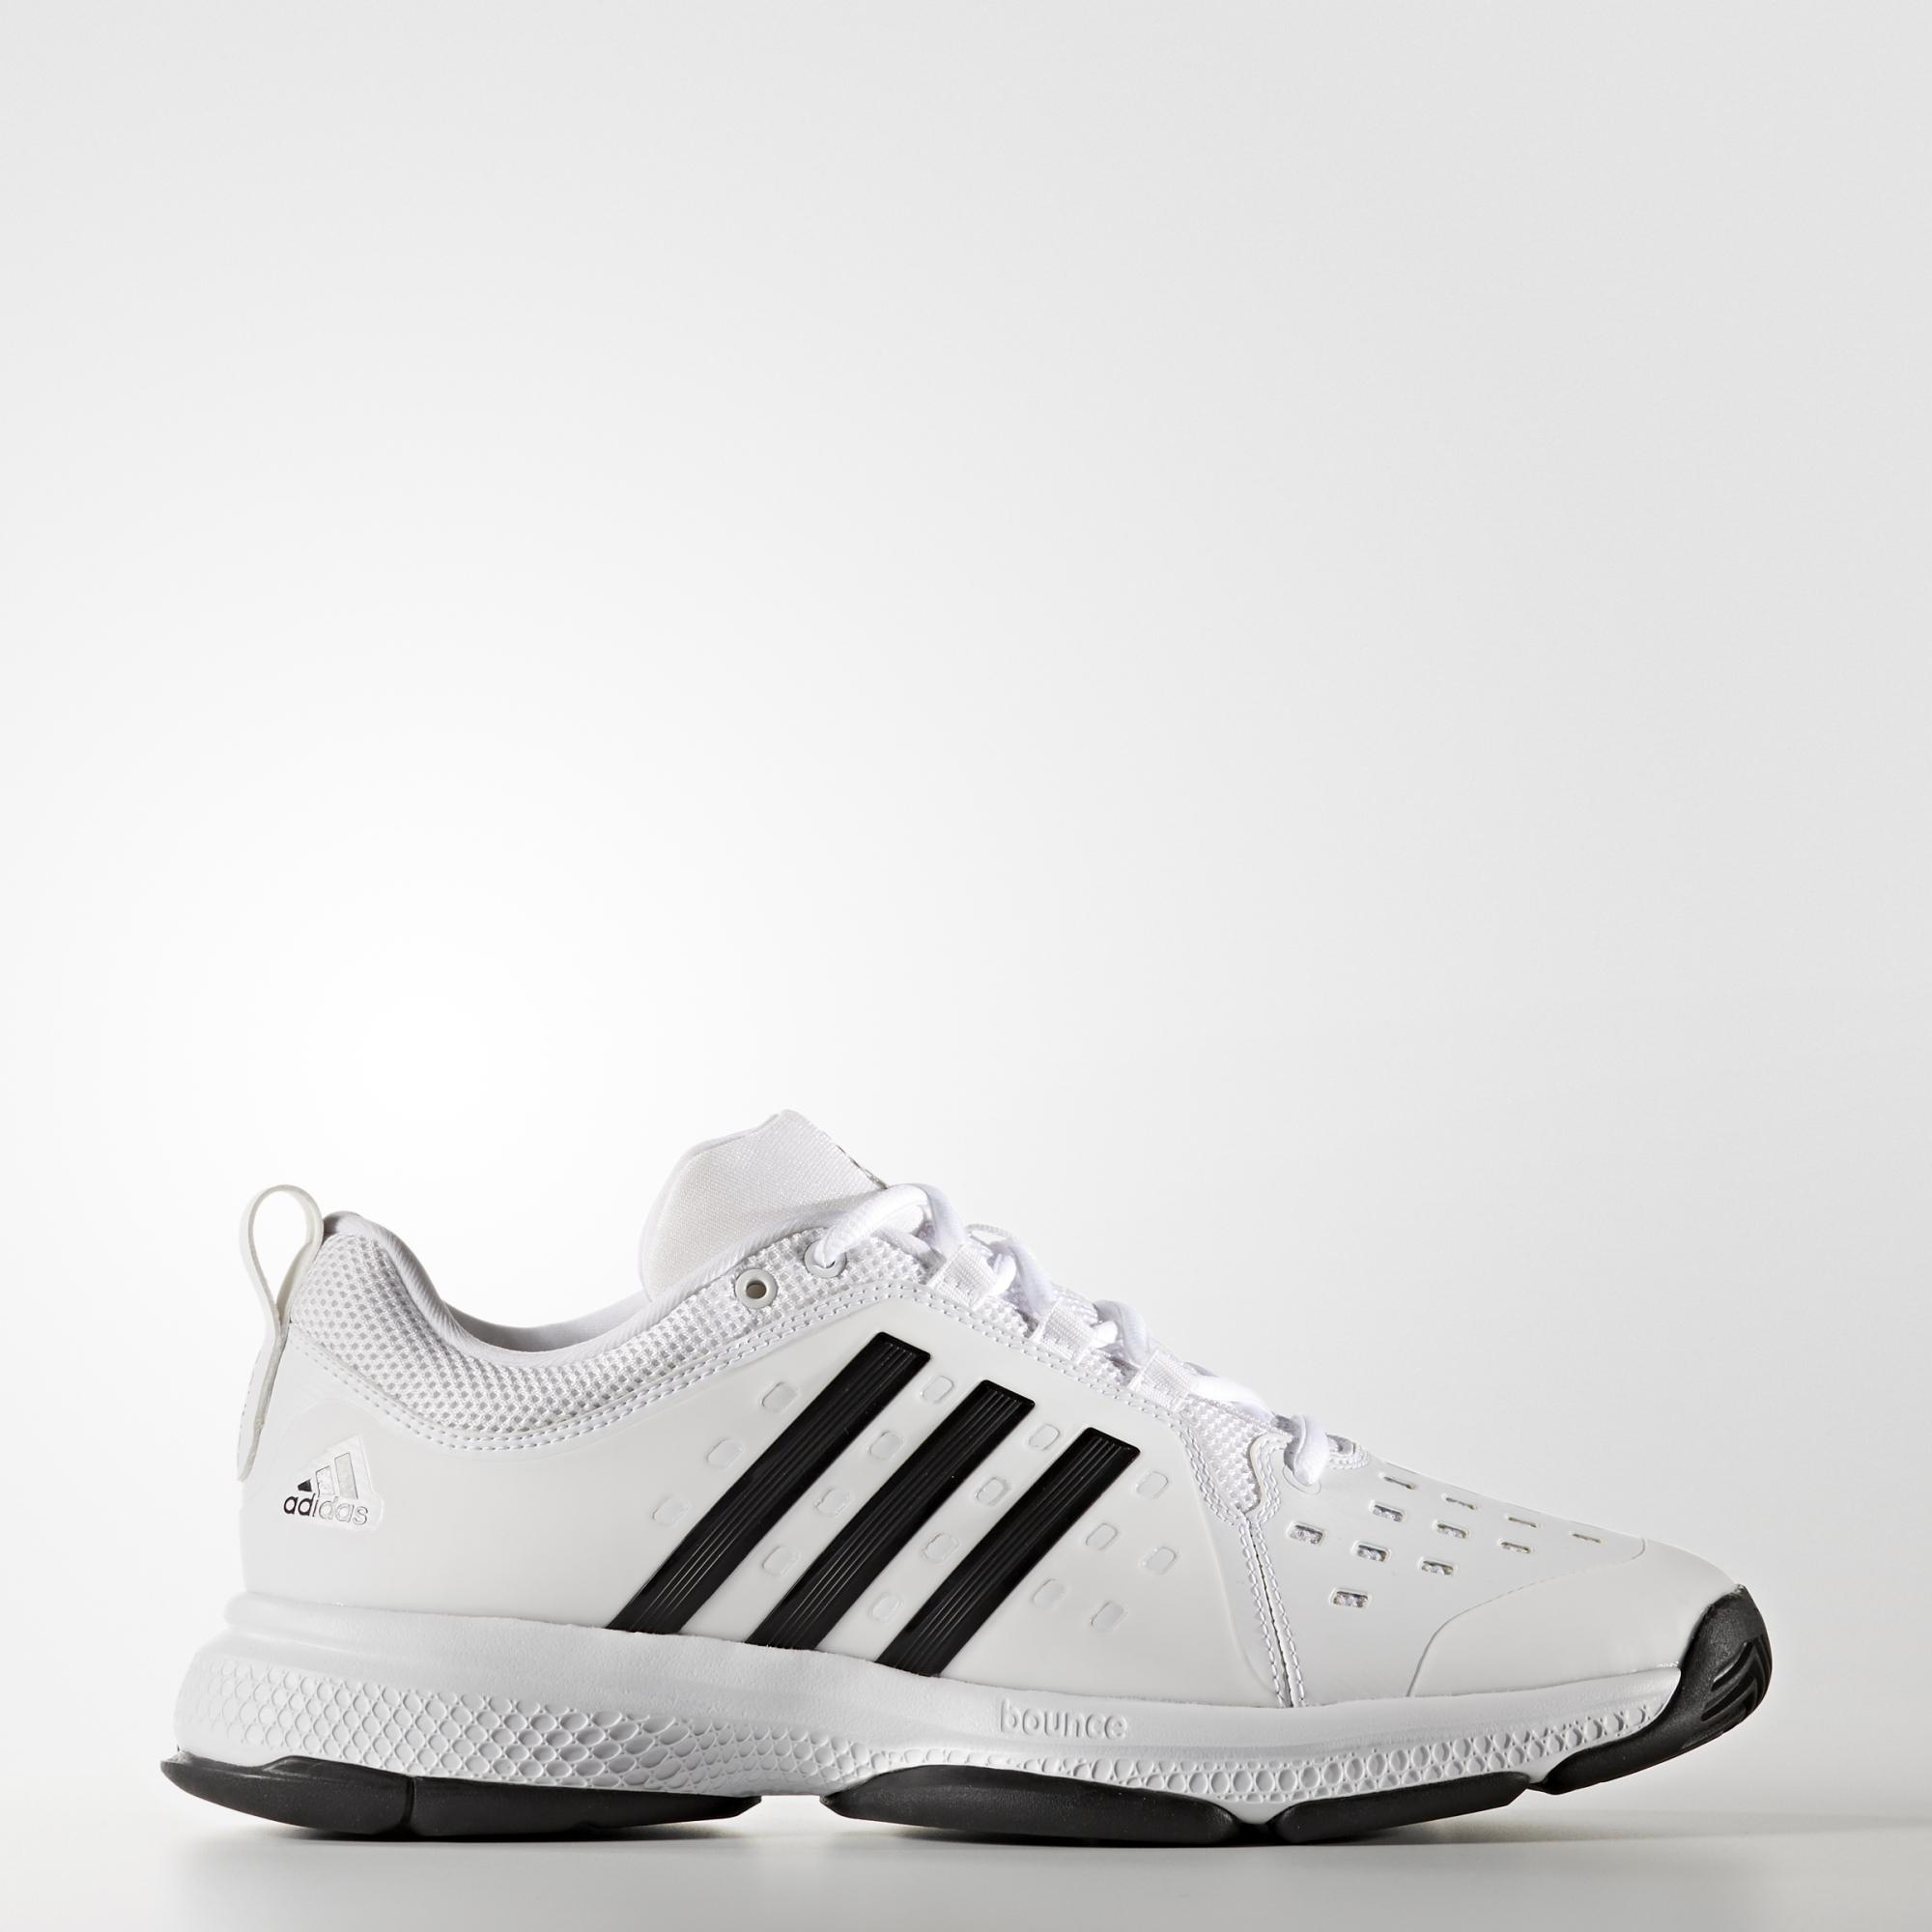 13c4f8fd9 Adidas Mens Barricade Classic Bounce Tennis Shoes - White Black -  Tennisnuts.com